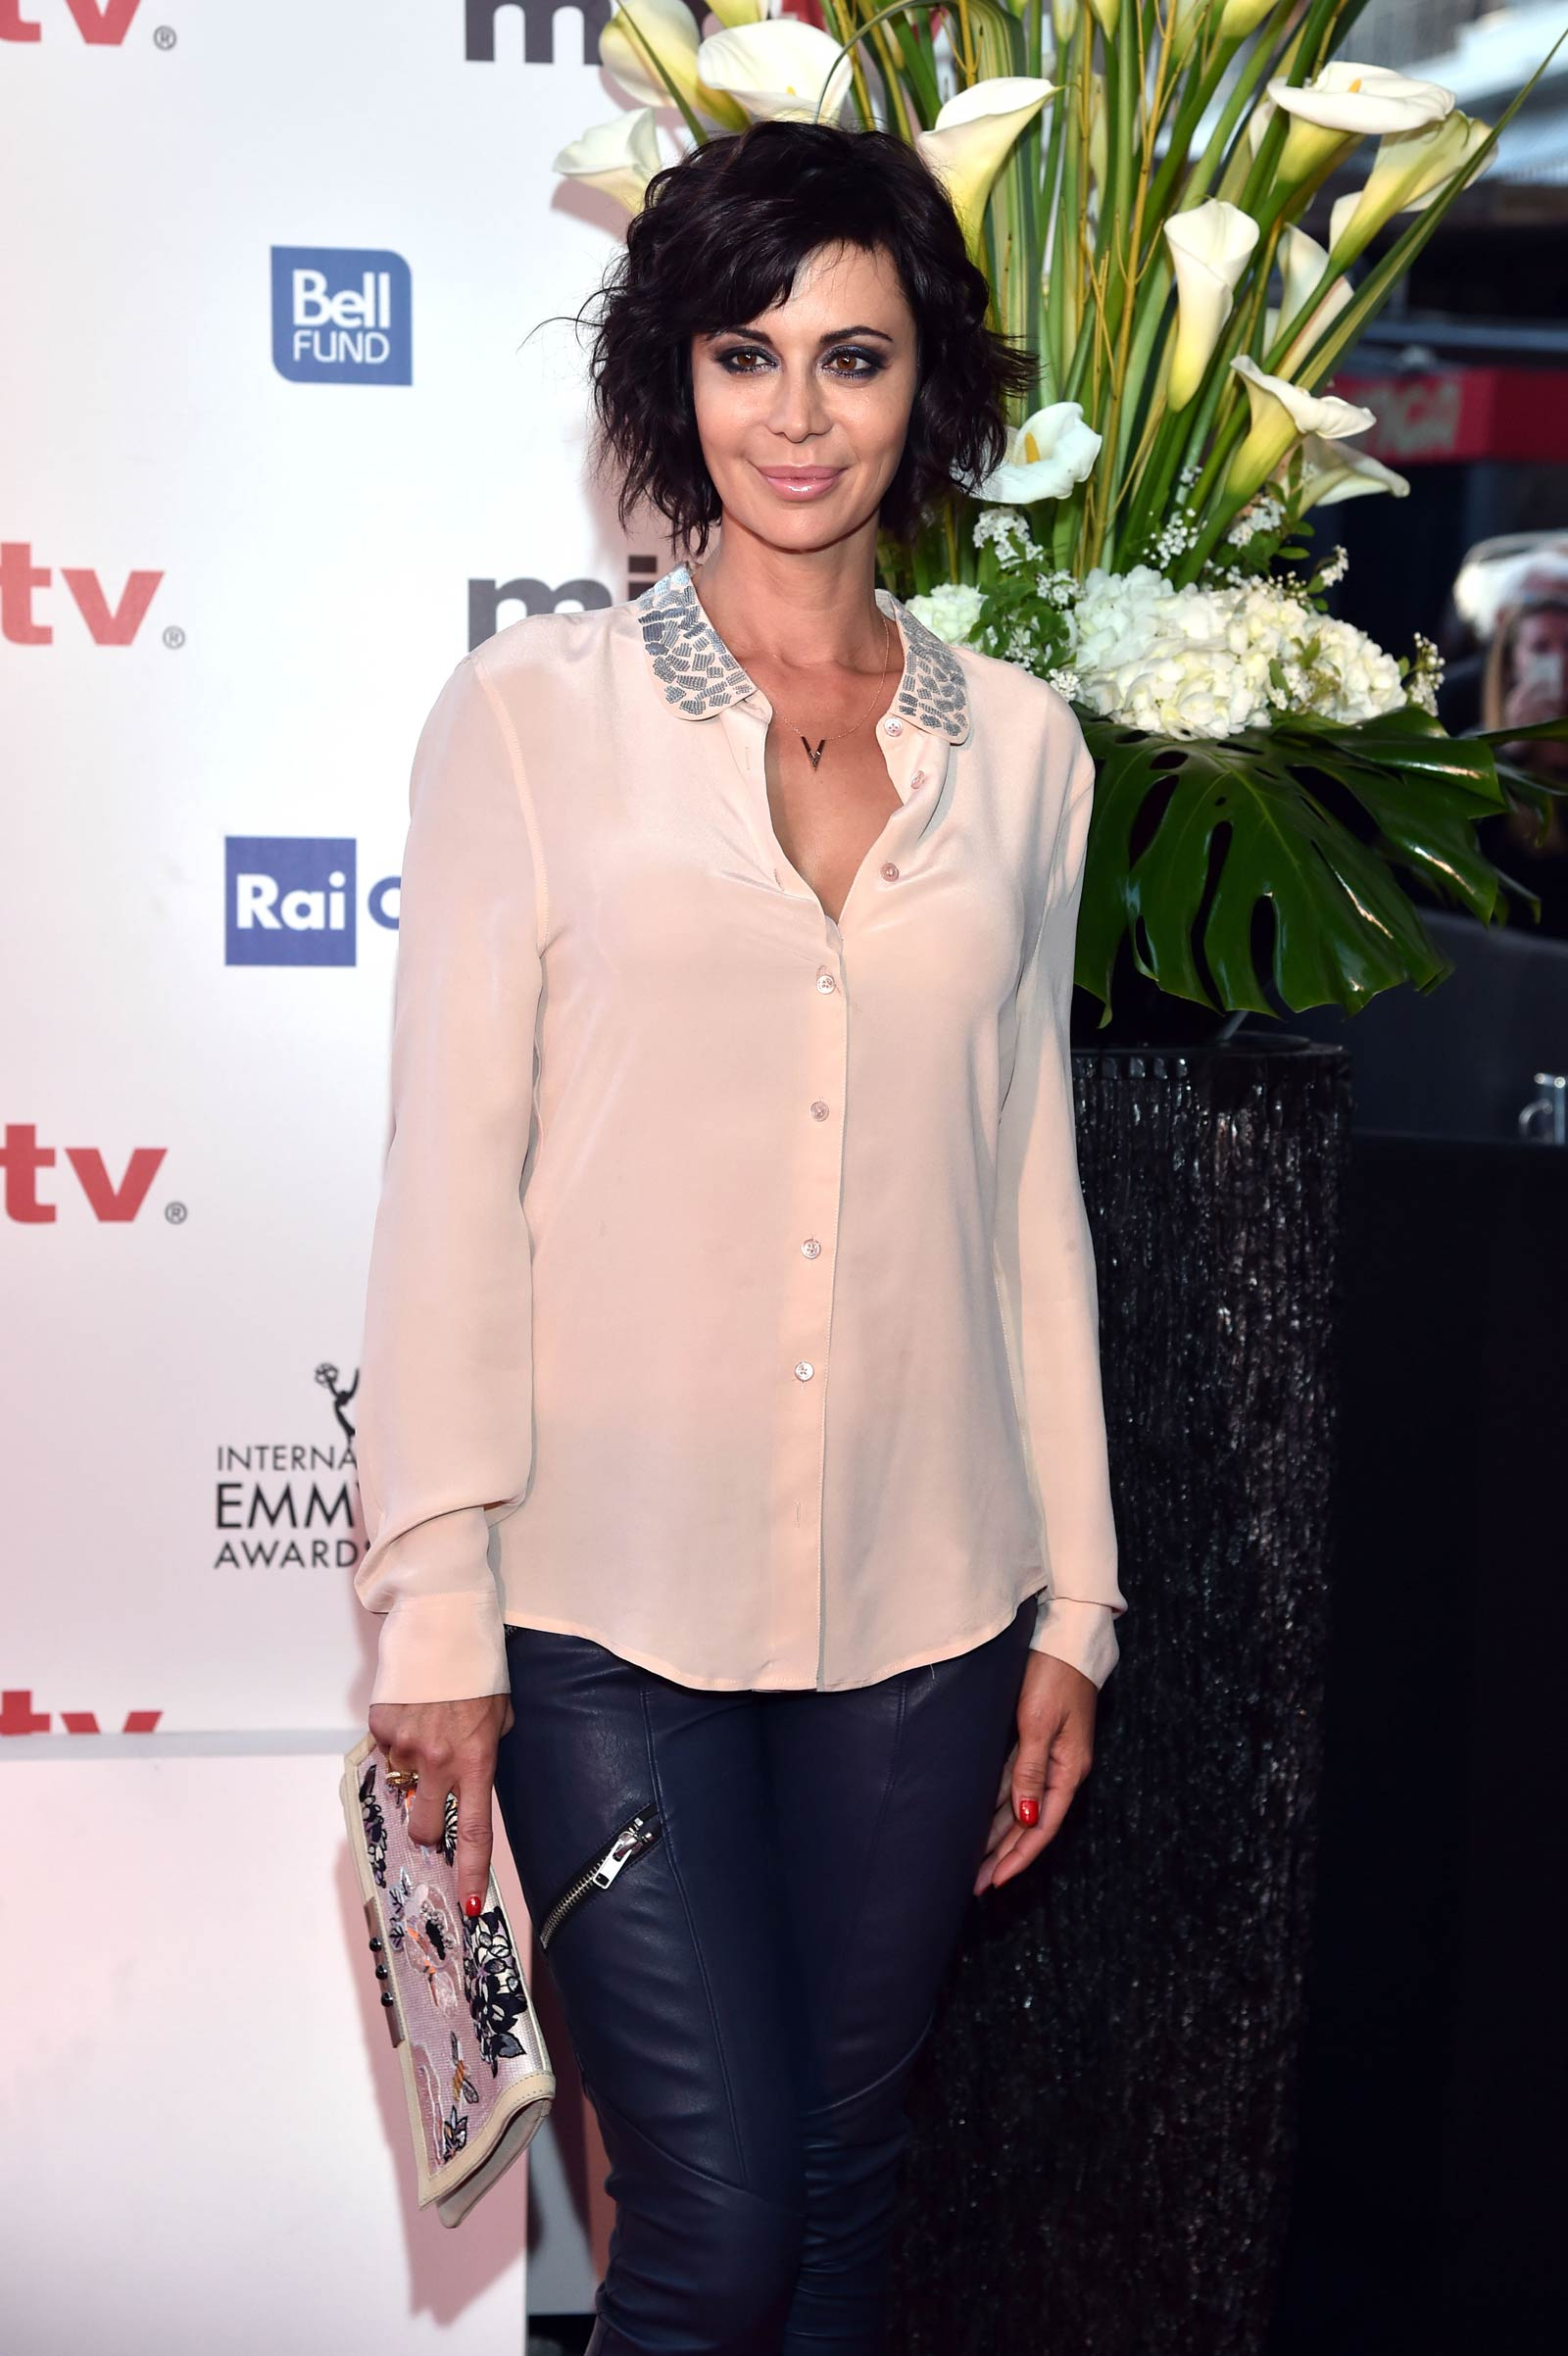 Catherine Bell attends MIPTV 2015 Opening Party